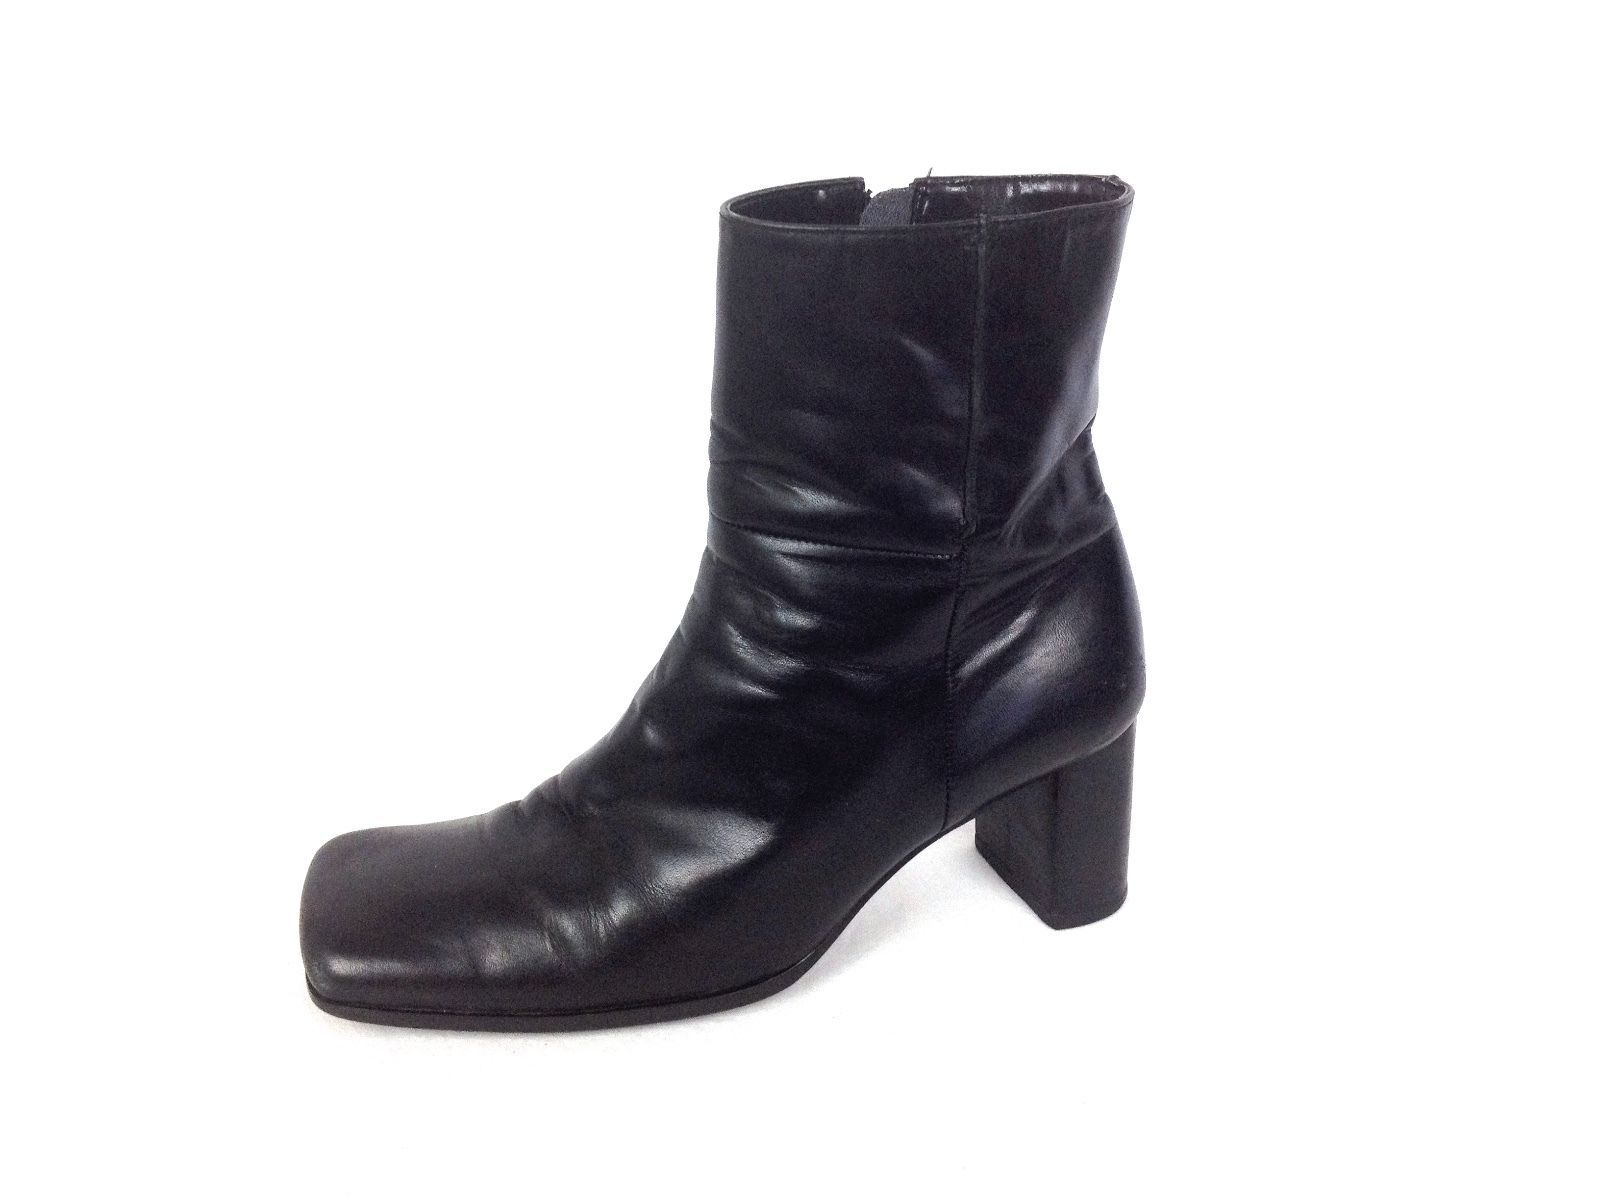 Nine West Shoes 6 5 Womens Black Leather Boots For Sale